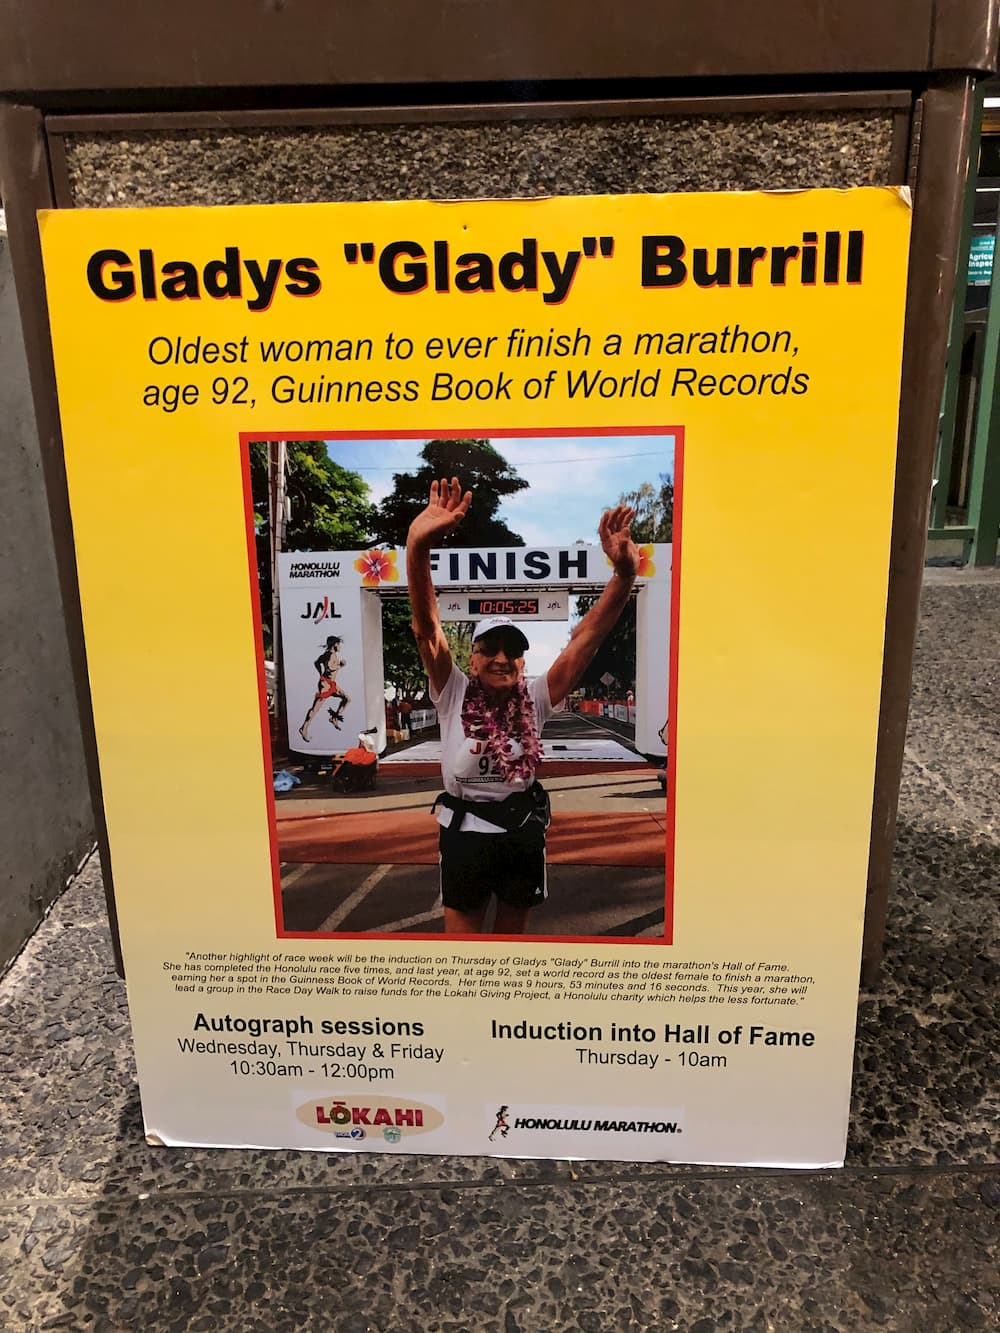 Athlete Gladys Burrill